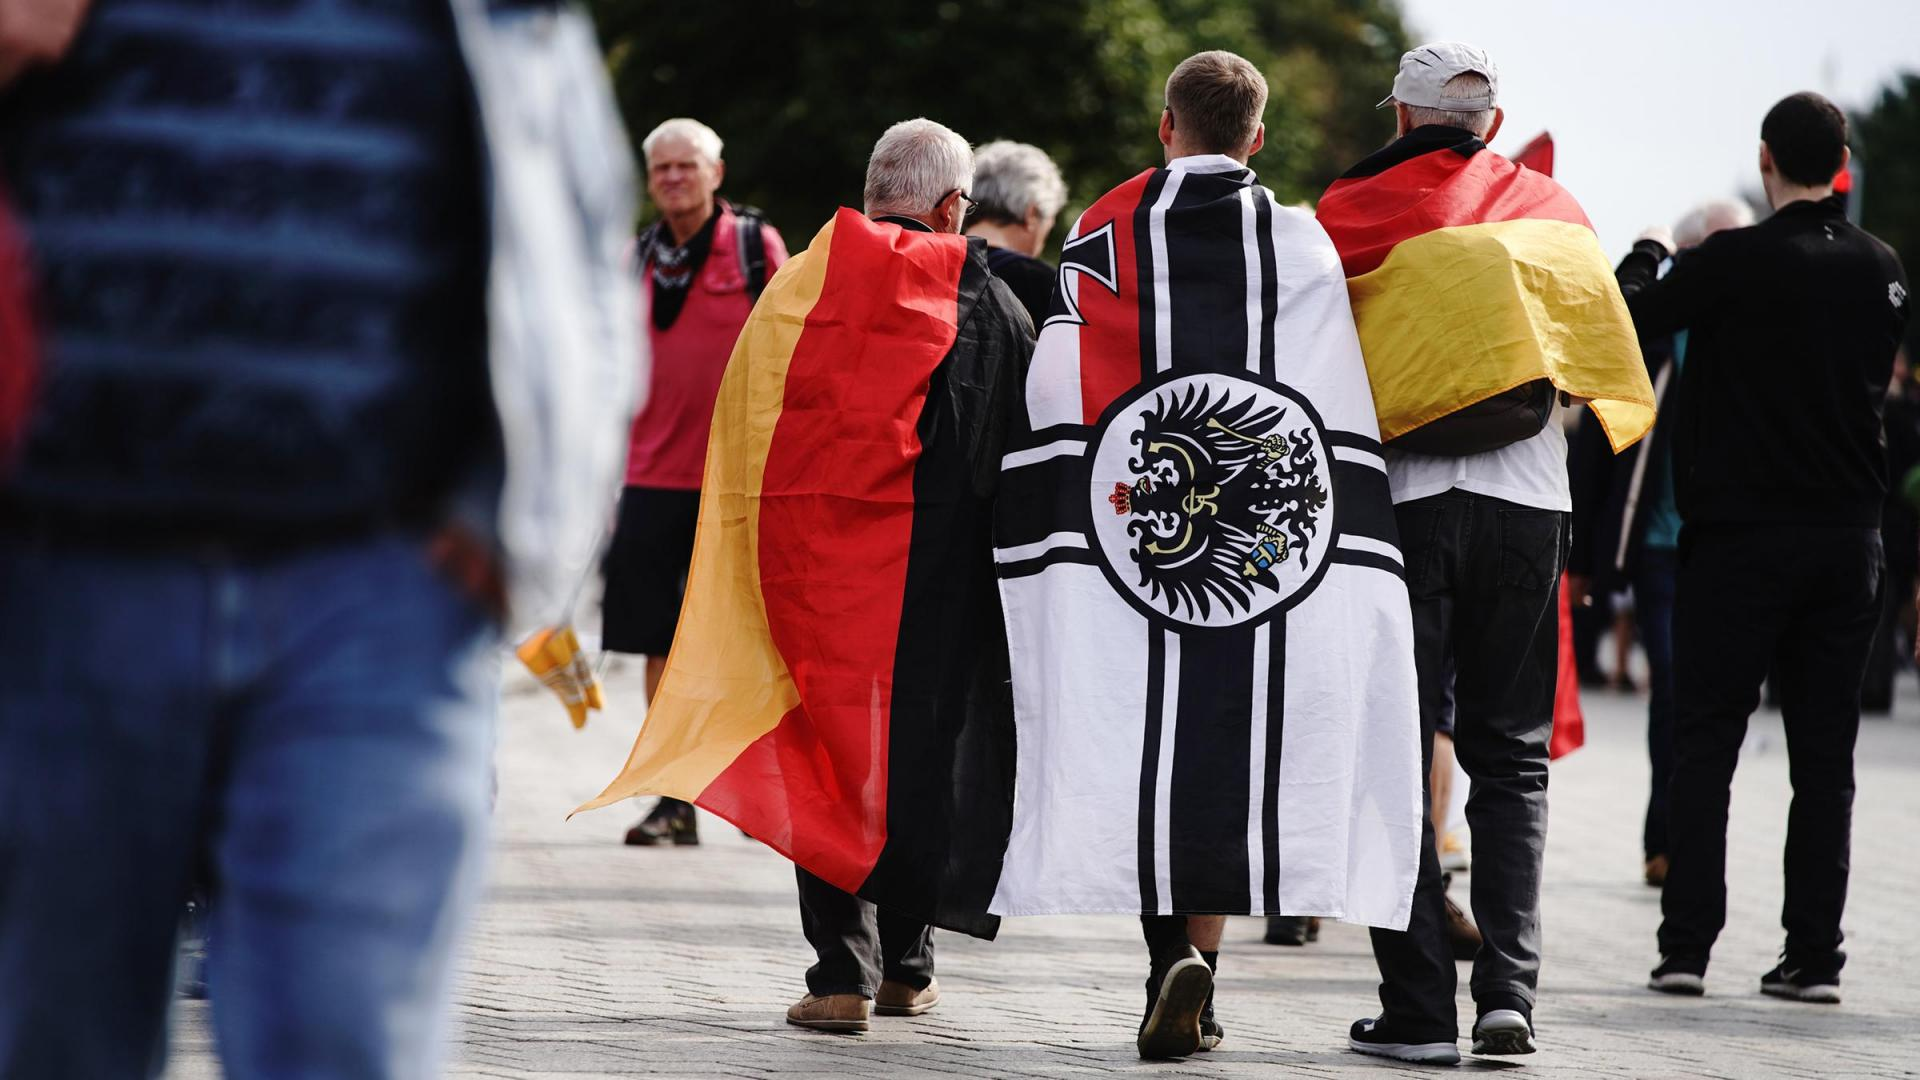 Monarchiste allemand portant le drapeau imperial